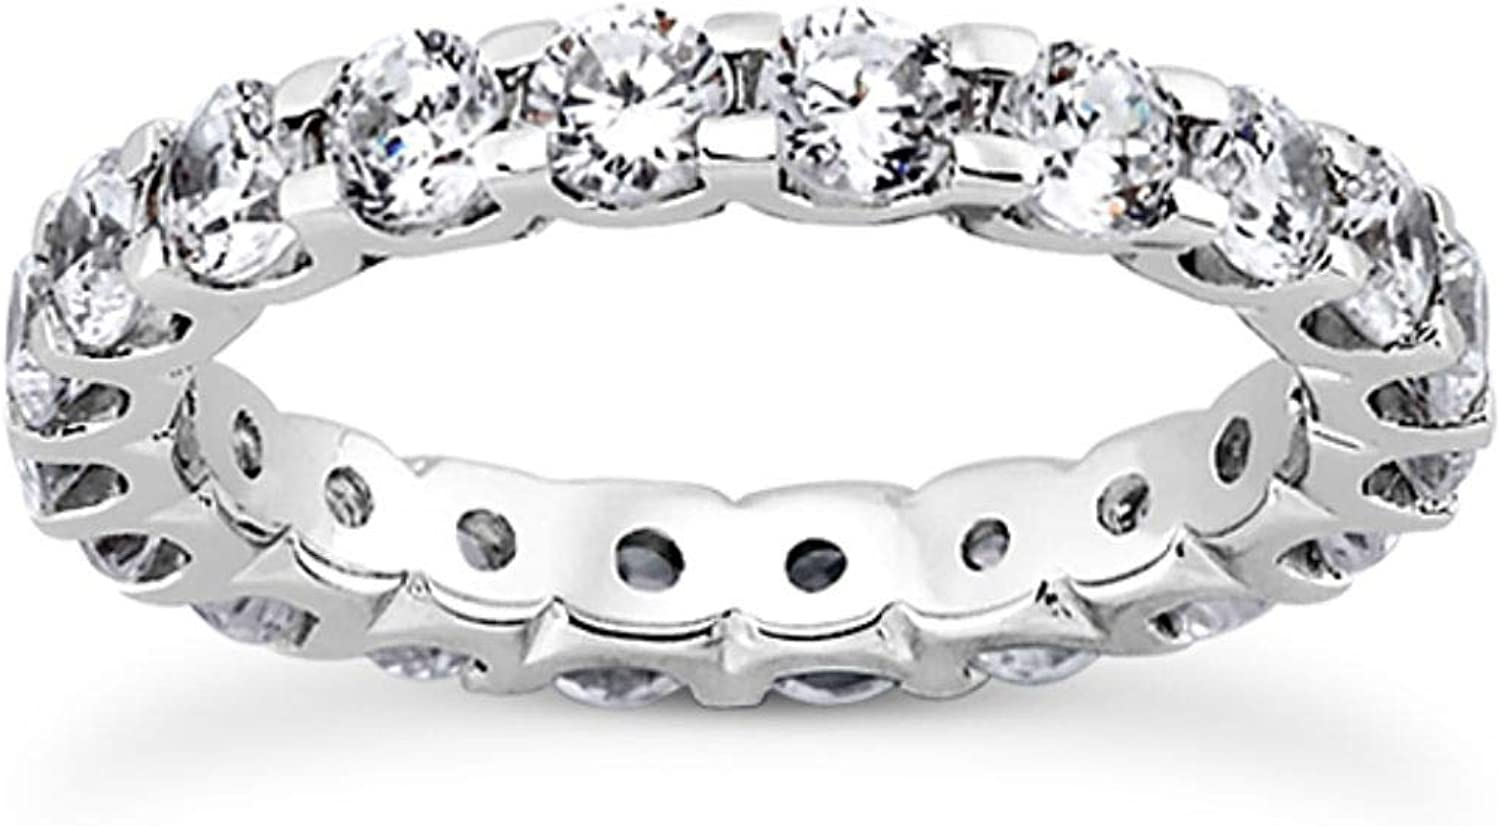 3.50 Carat Total Weight Direct store U Shape 5 ☆ very popular Shared Low Set Prong Roun Ladies